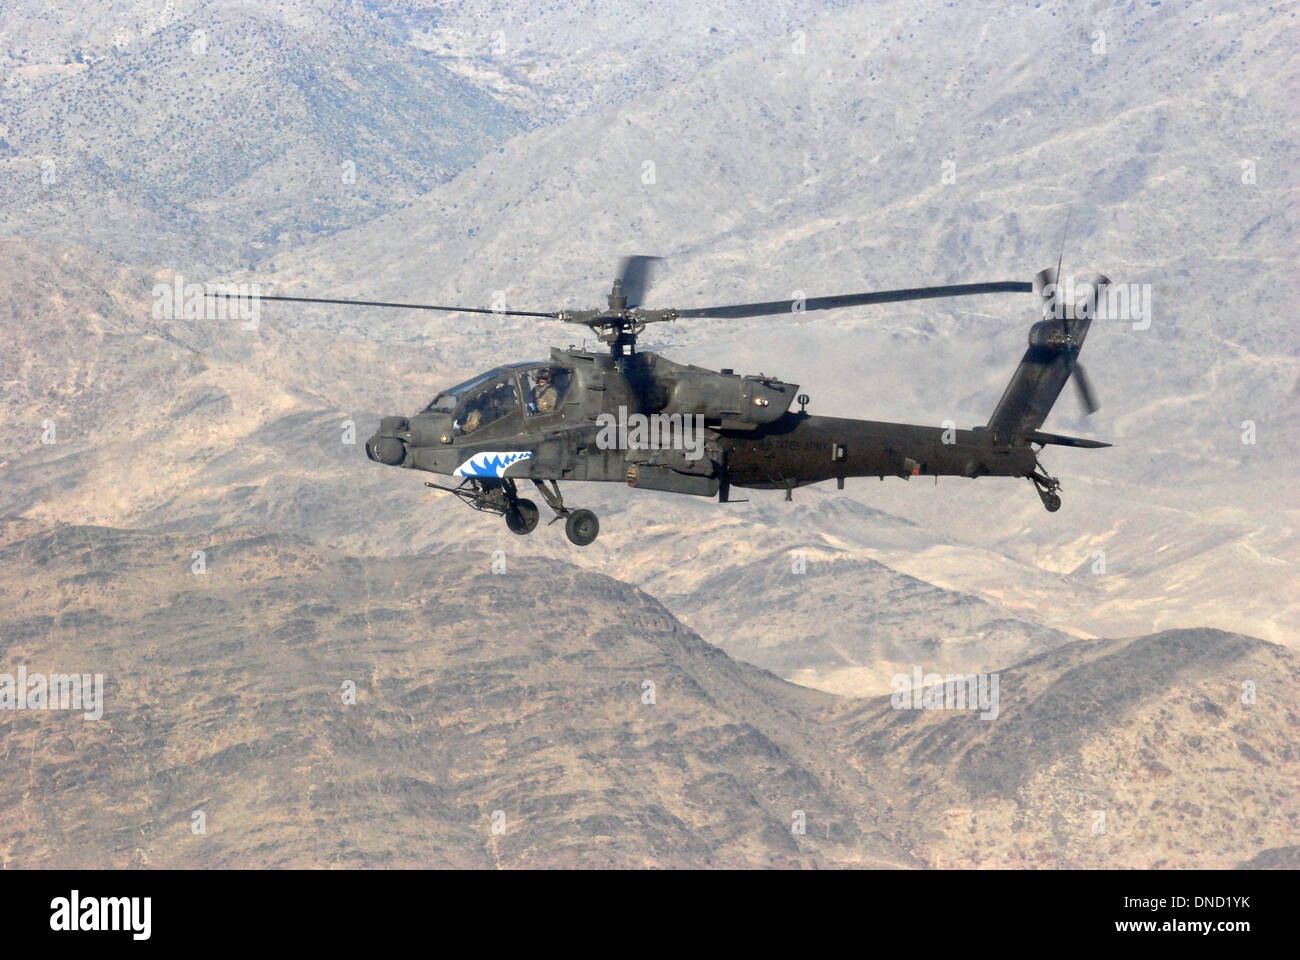 apache helicopter footage with Stock Photo A Us Army Ah 64 Apache Attack Helicopter Conducts An Armed Aerial 64825815 on F 35 lightning Ii hd Stock Footage in addition 8 likewise Gunship furthermore M230 Chain Gun further Watch.